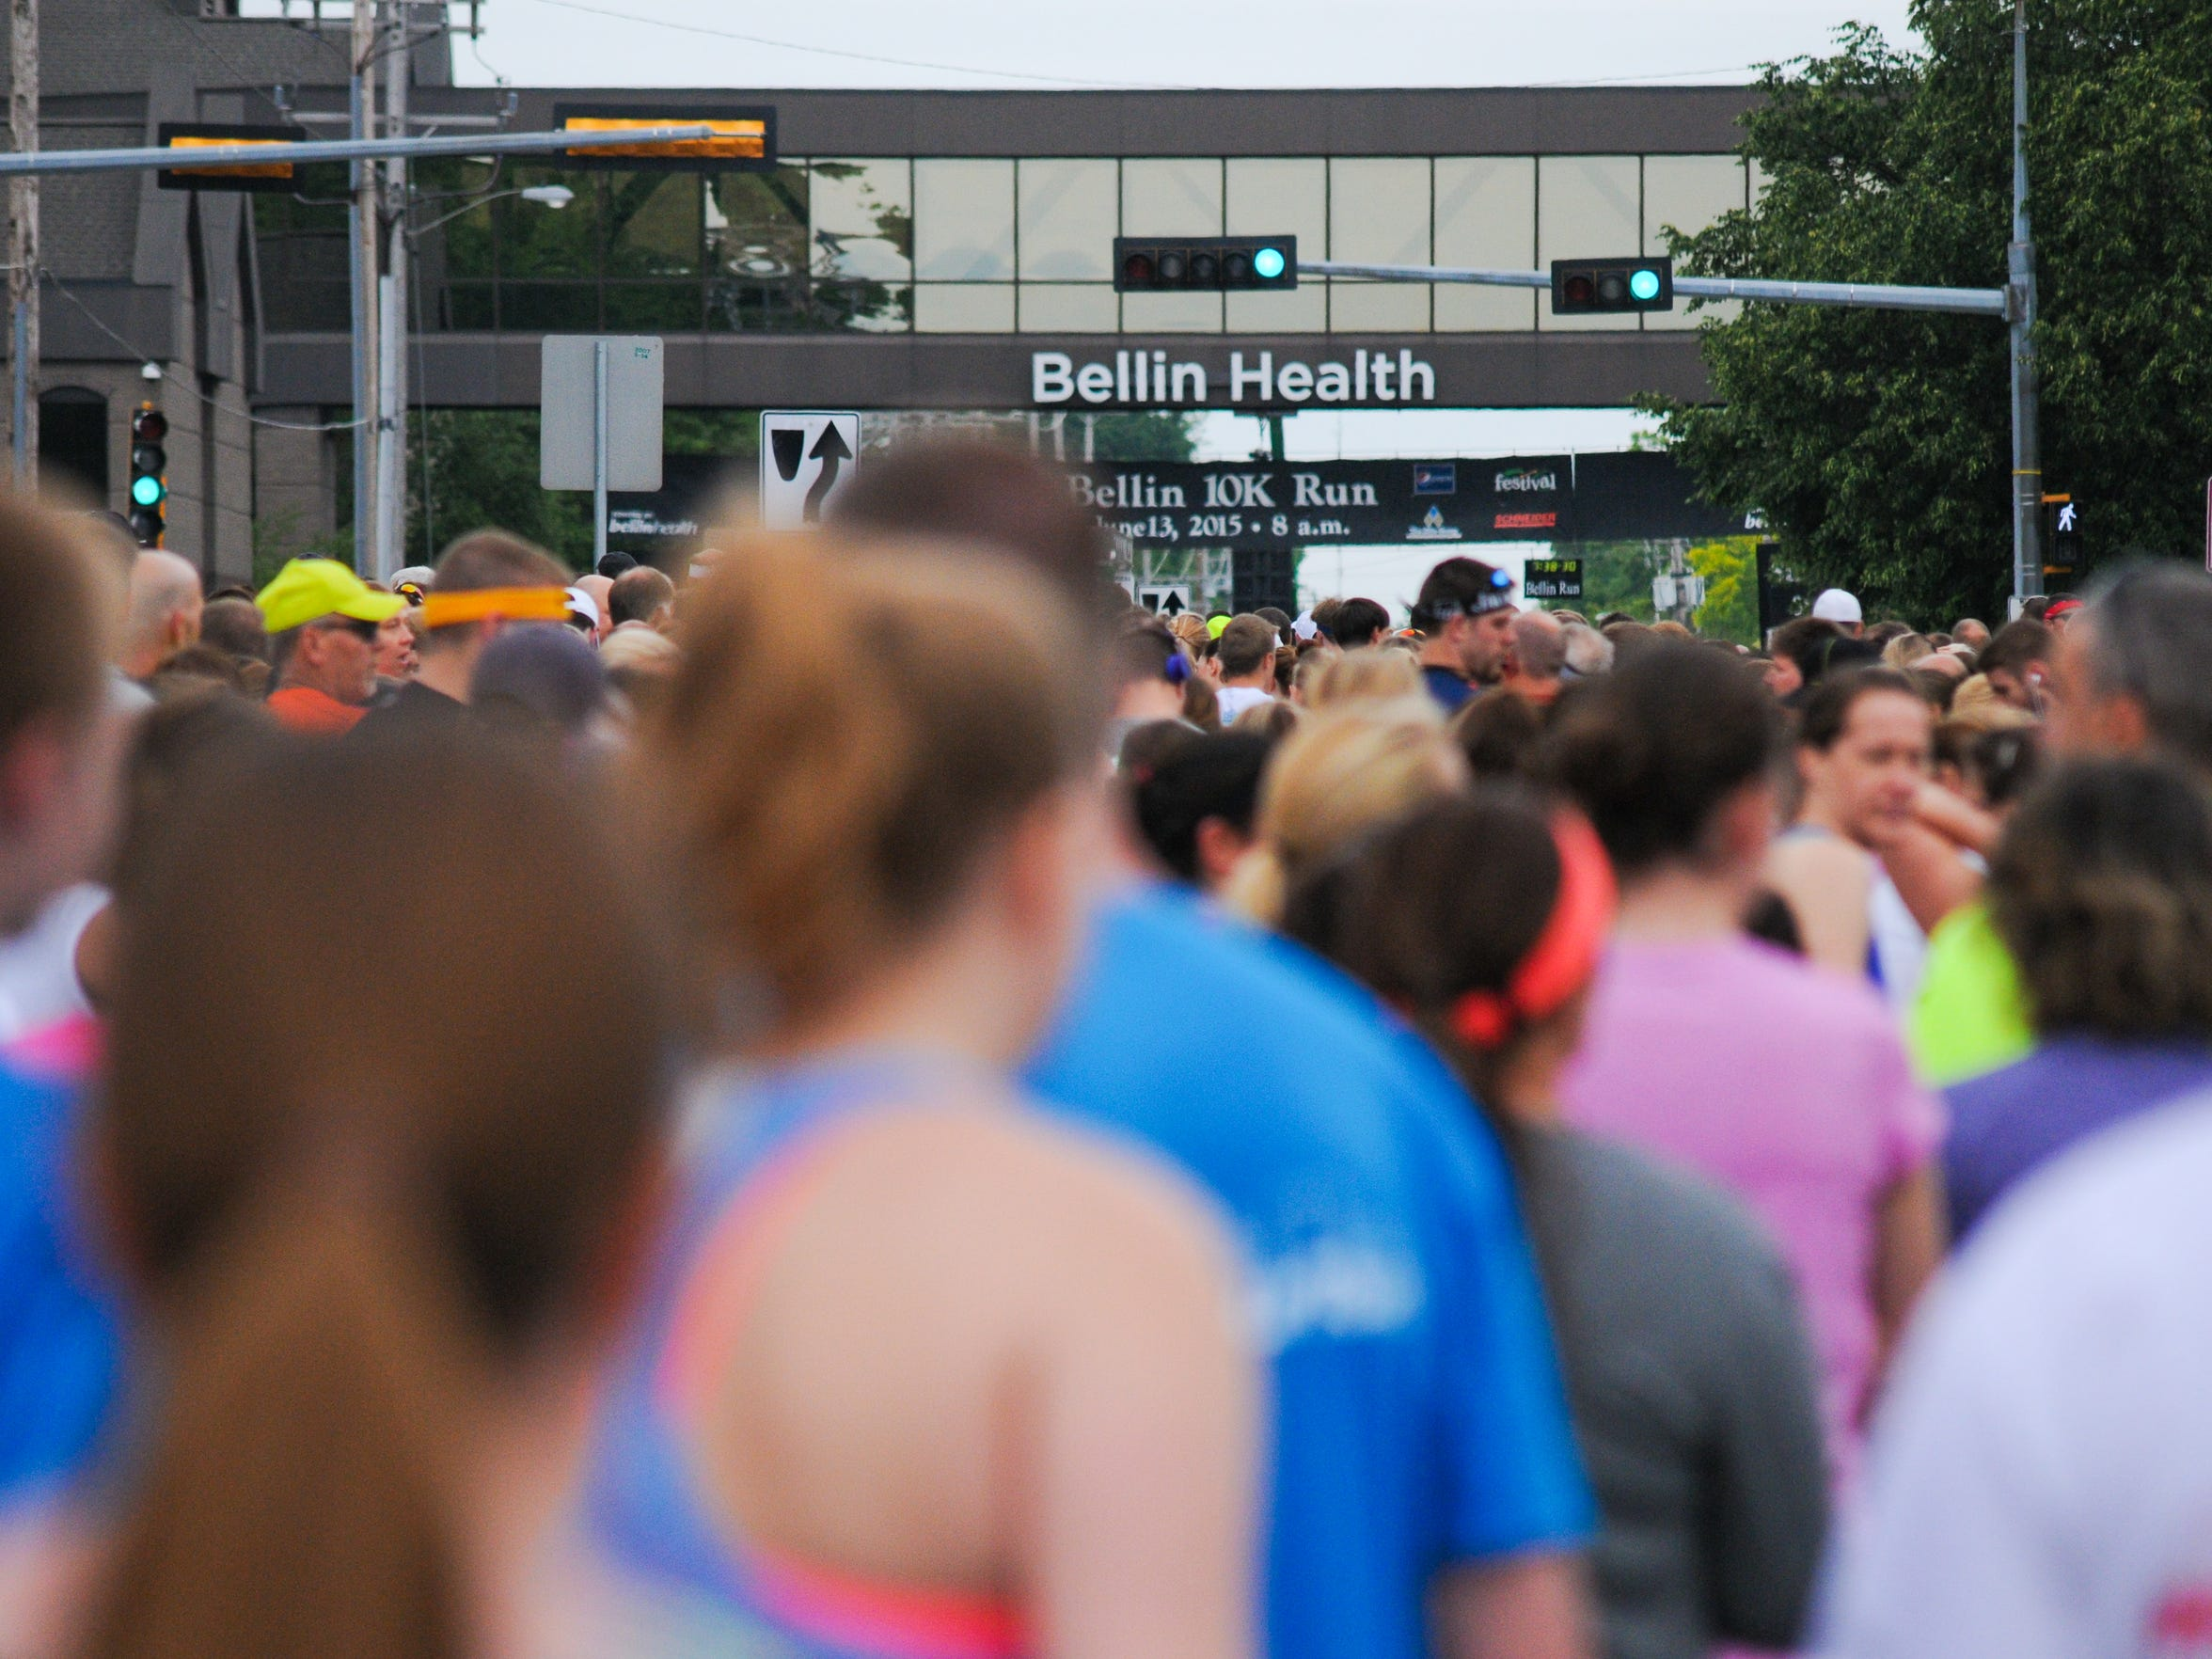 More than 16,000 runners participated in the 39th annual Bellin Run in June.